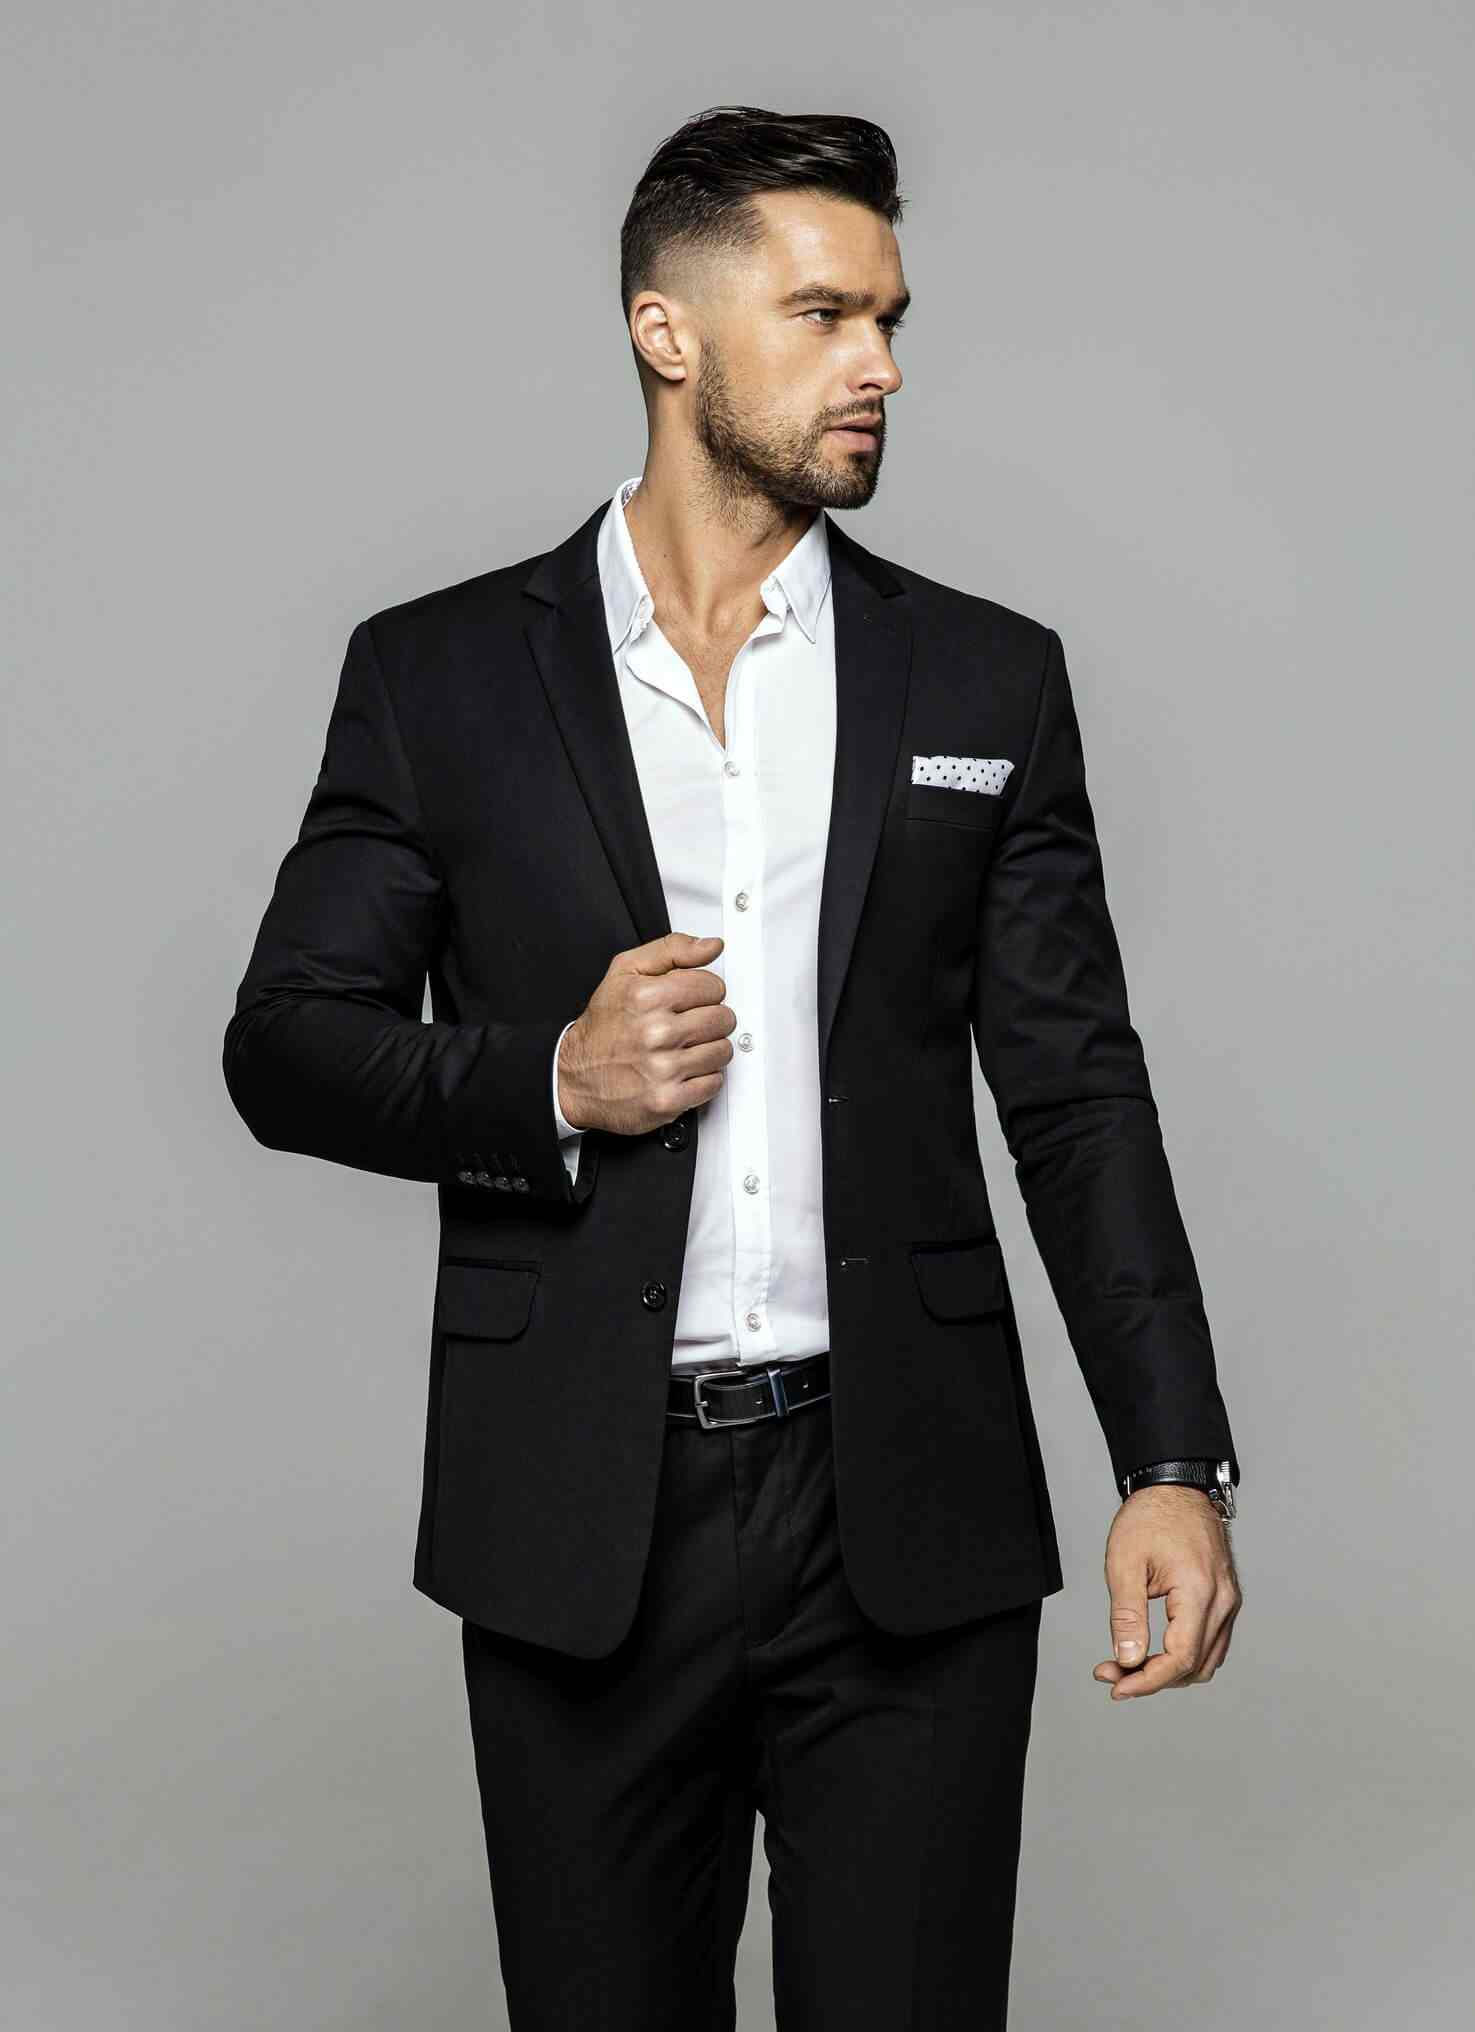 fashionable men's clothing on display by a male model